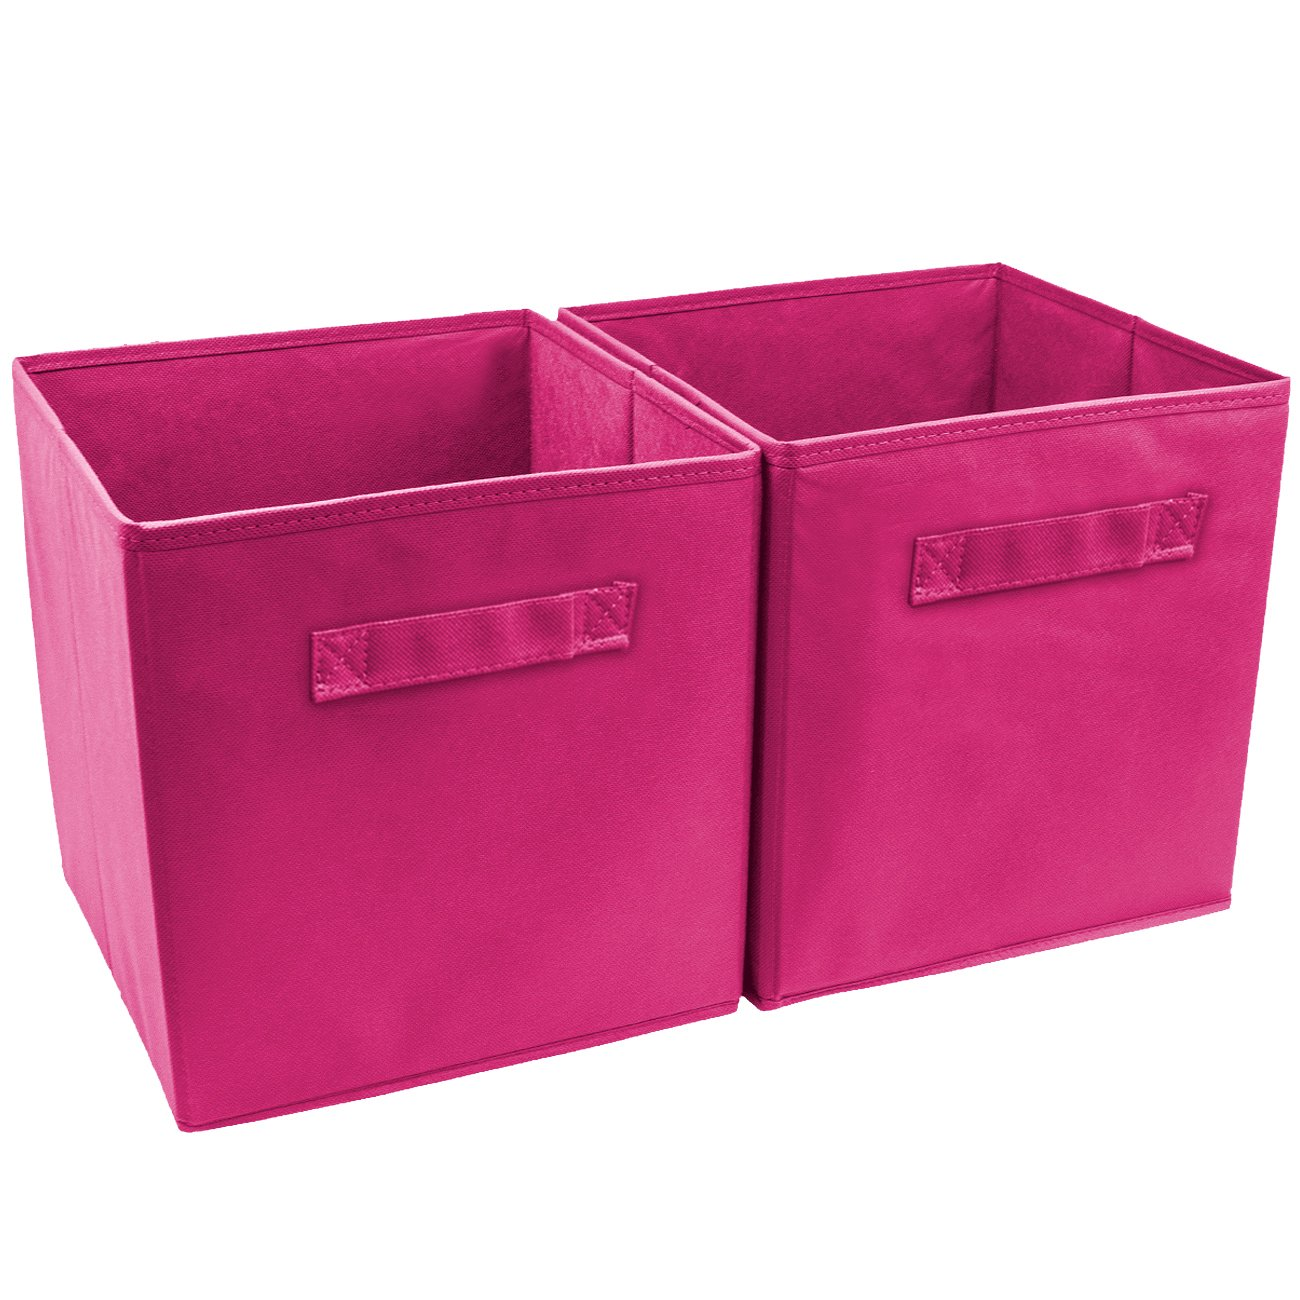 Marvelous Pink Storage Cube Basket 2 Pack Foldable Clothes Books Organizer Fabric Bins  2Pc